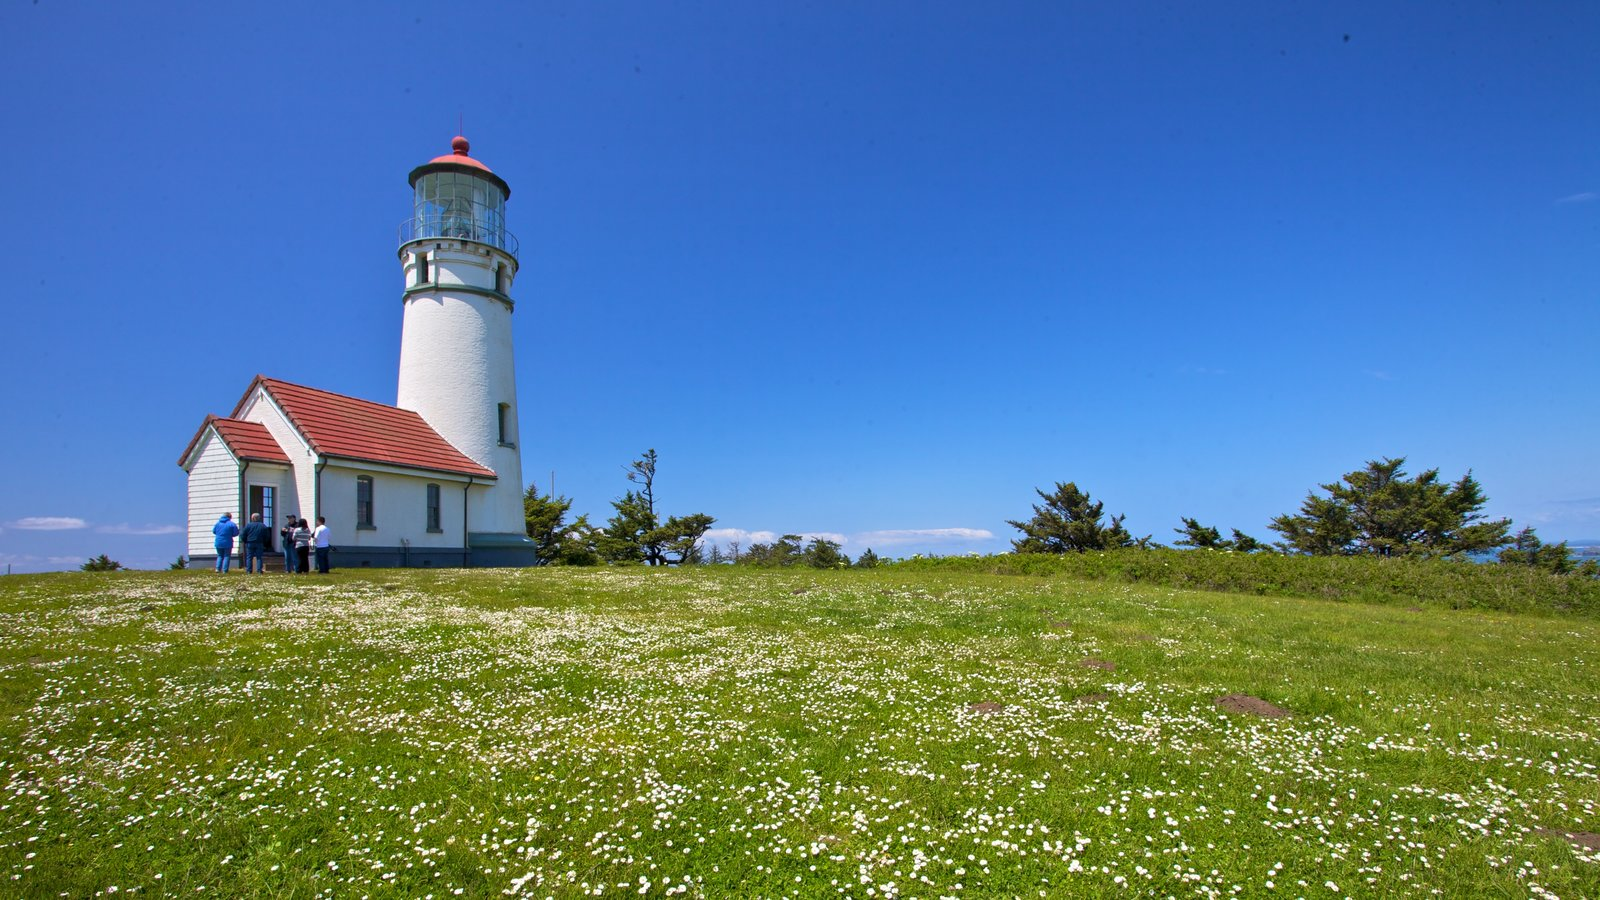 Oregon Coast showing a lighthouse and tranquil scenes